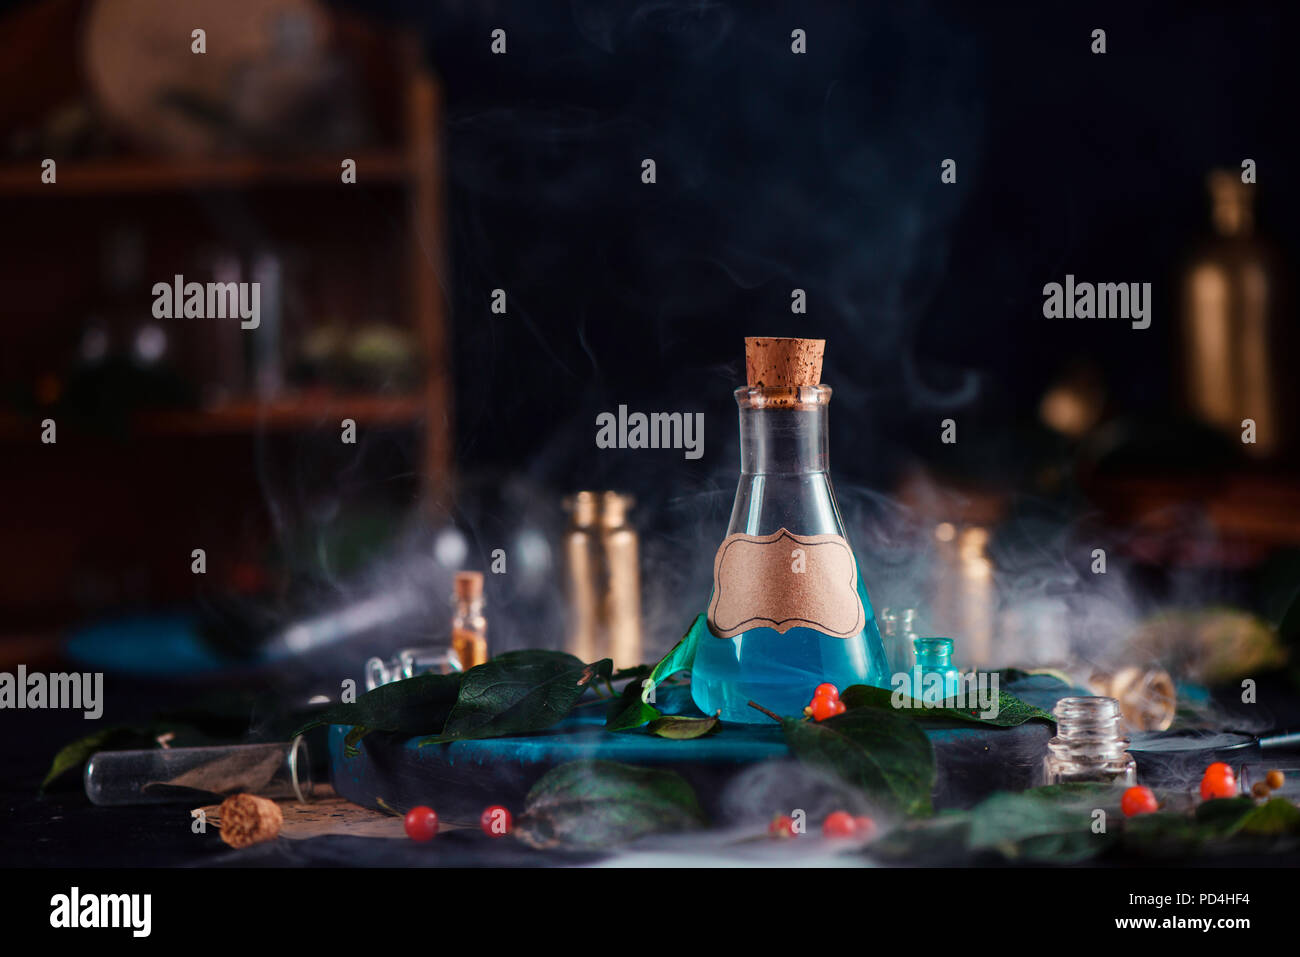 Blank label on a magic potion bottle. Modern witchcraft concept with potions, berries, herbs and occult equipment. Magical still life with copy space on a dark background. - Stock Image